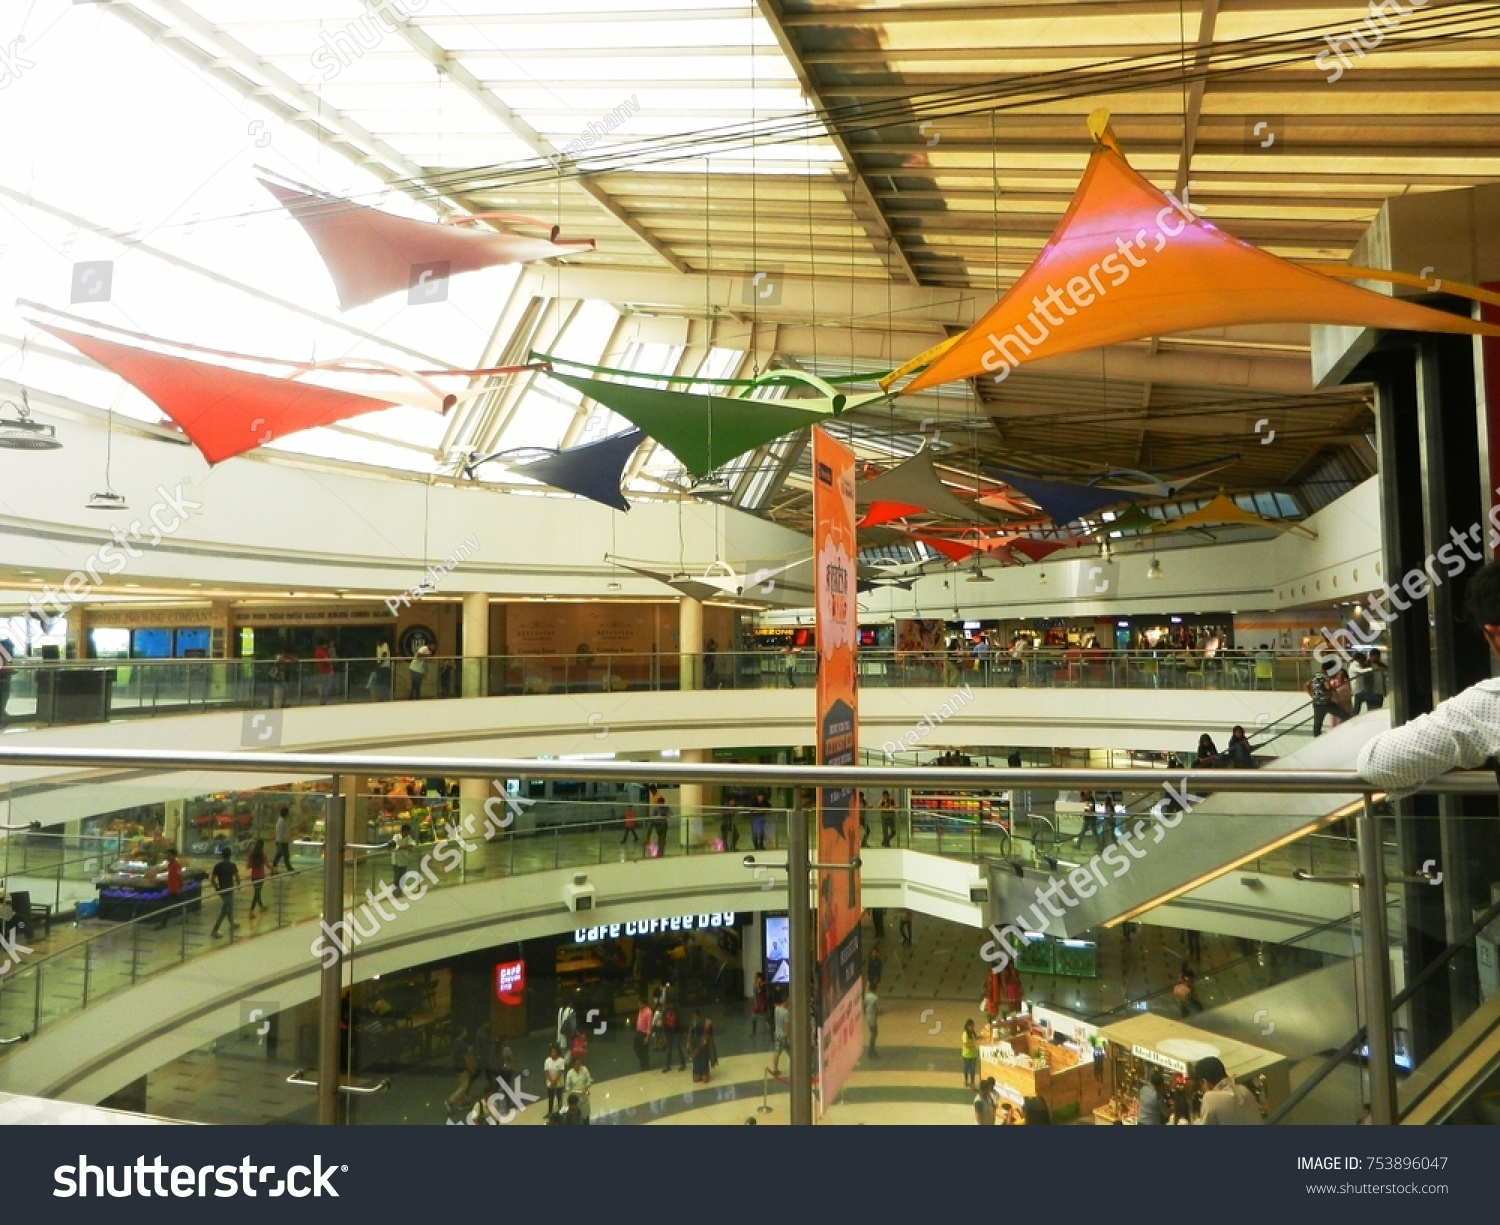 Shopping center Airplane (Ulyanovsk): everything you need for shopping and recreation